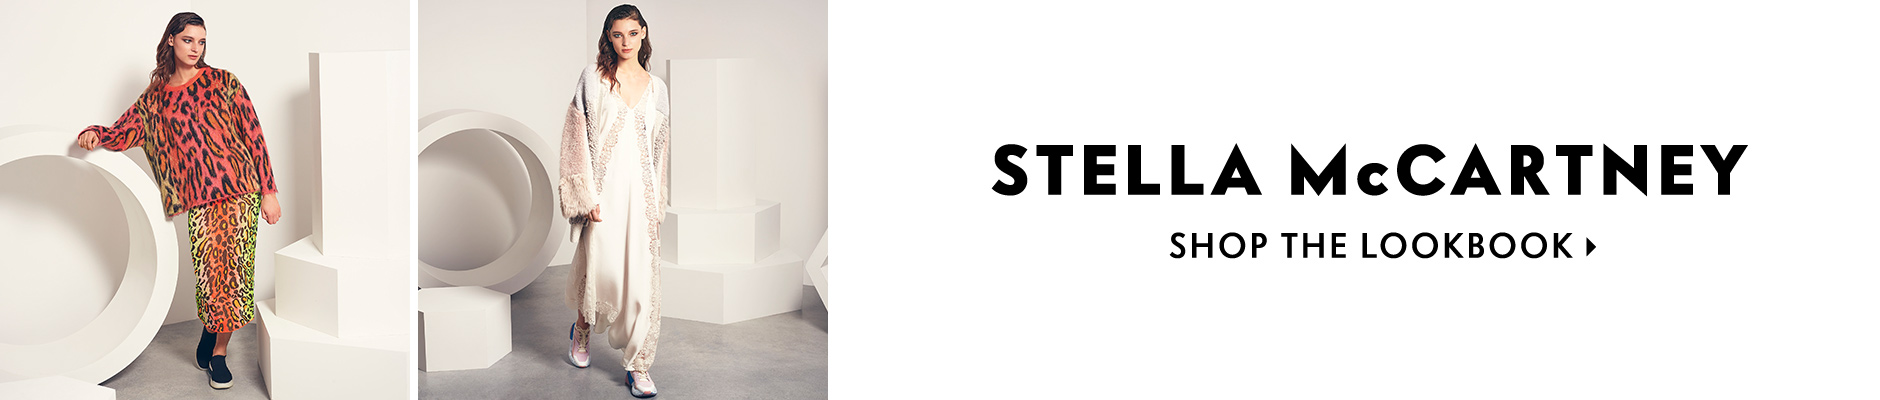 Stella McCartney Lookbook